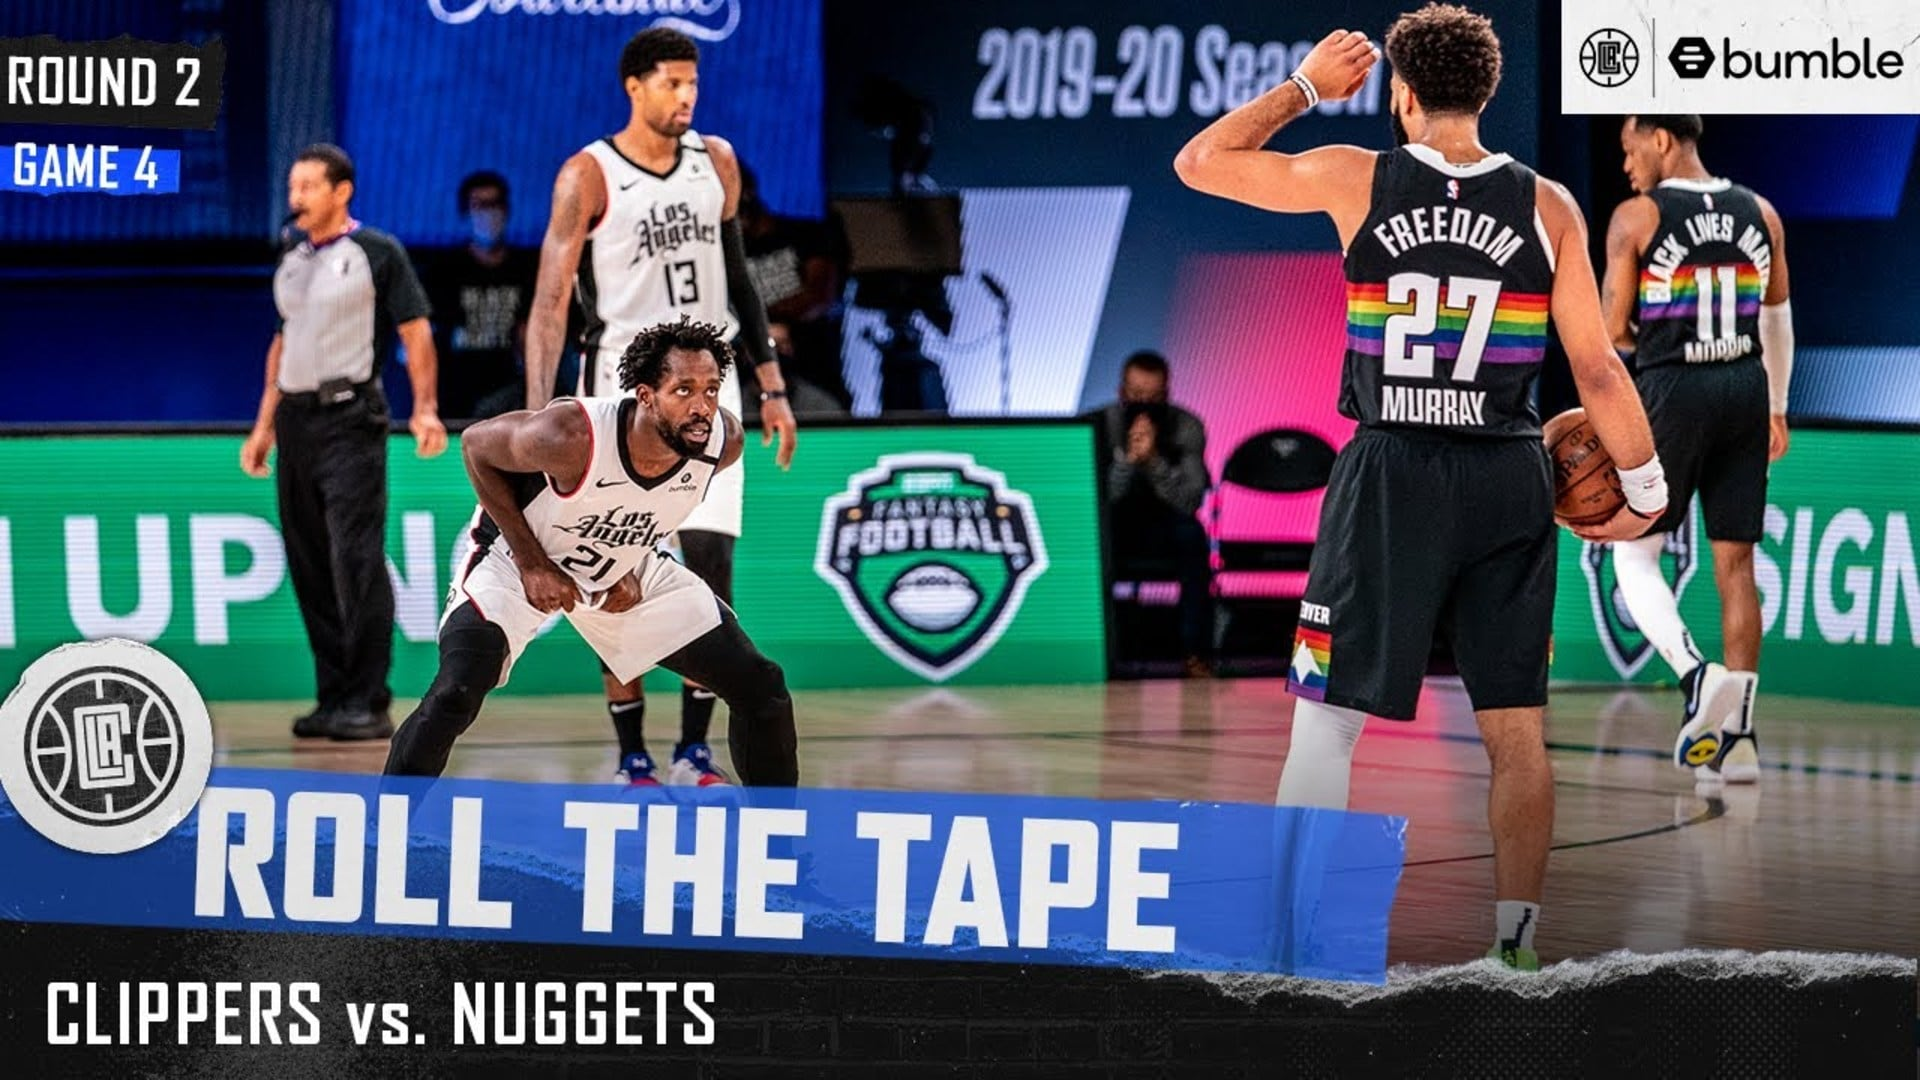 The Job Isn't Done | Roll the Tape | R2G4 vs. Nuggets